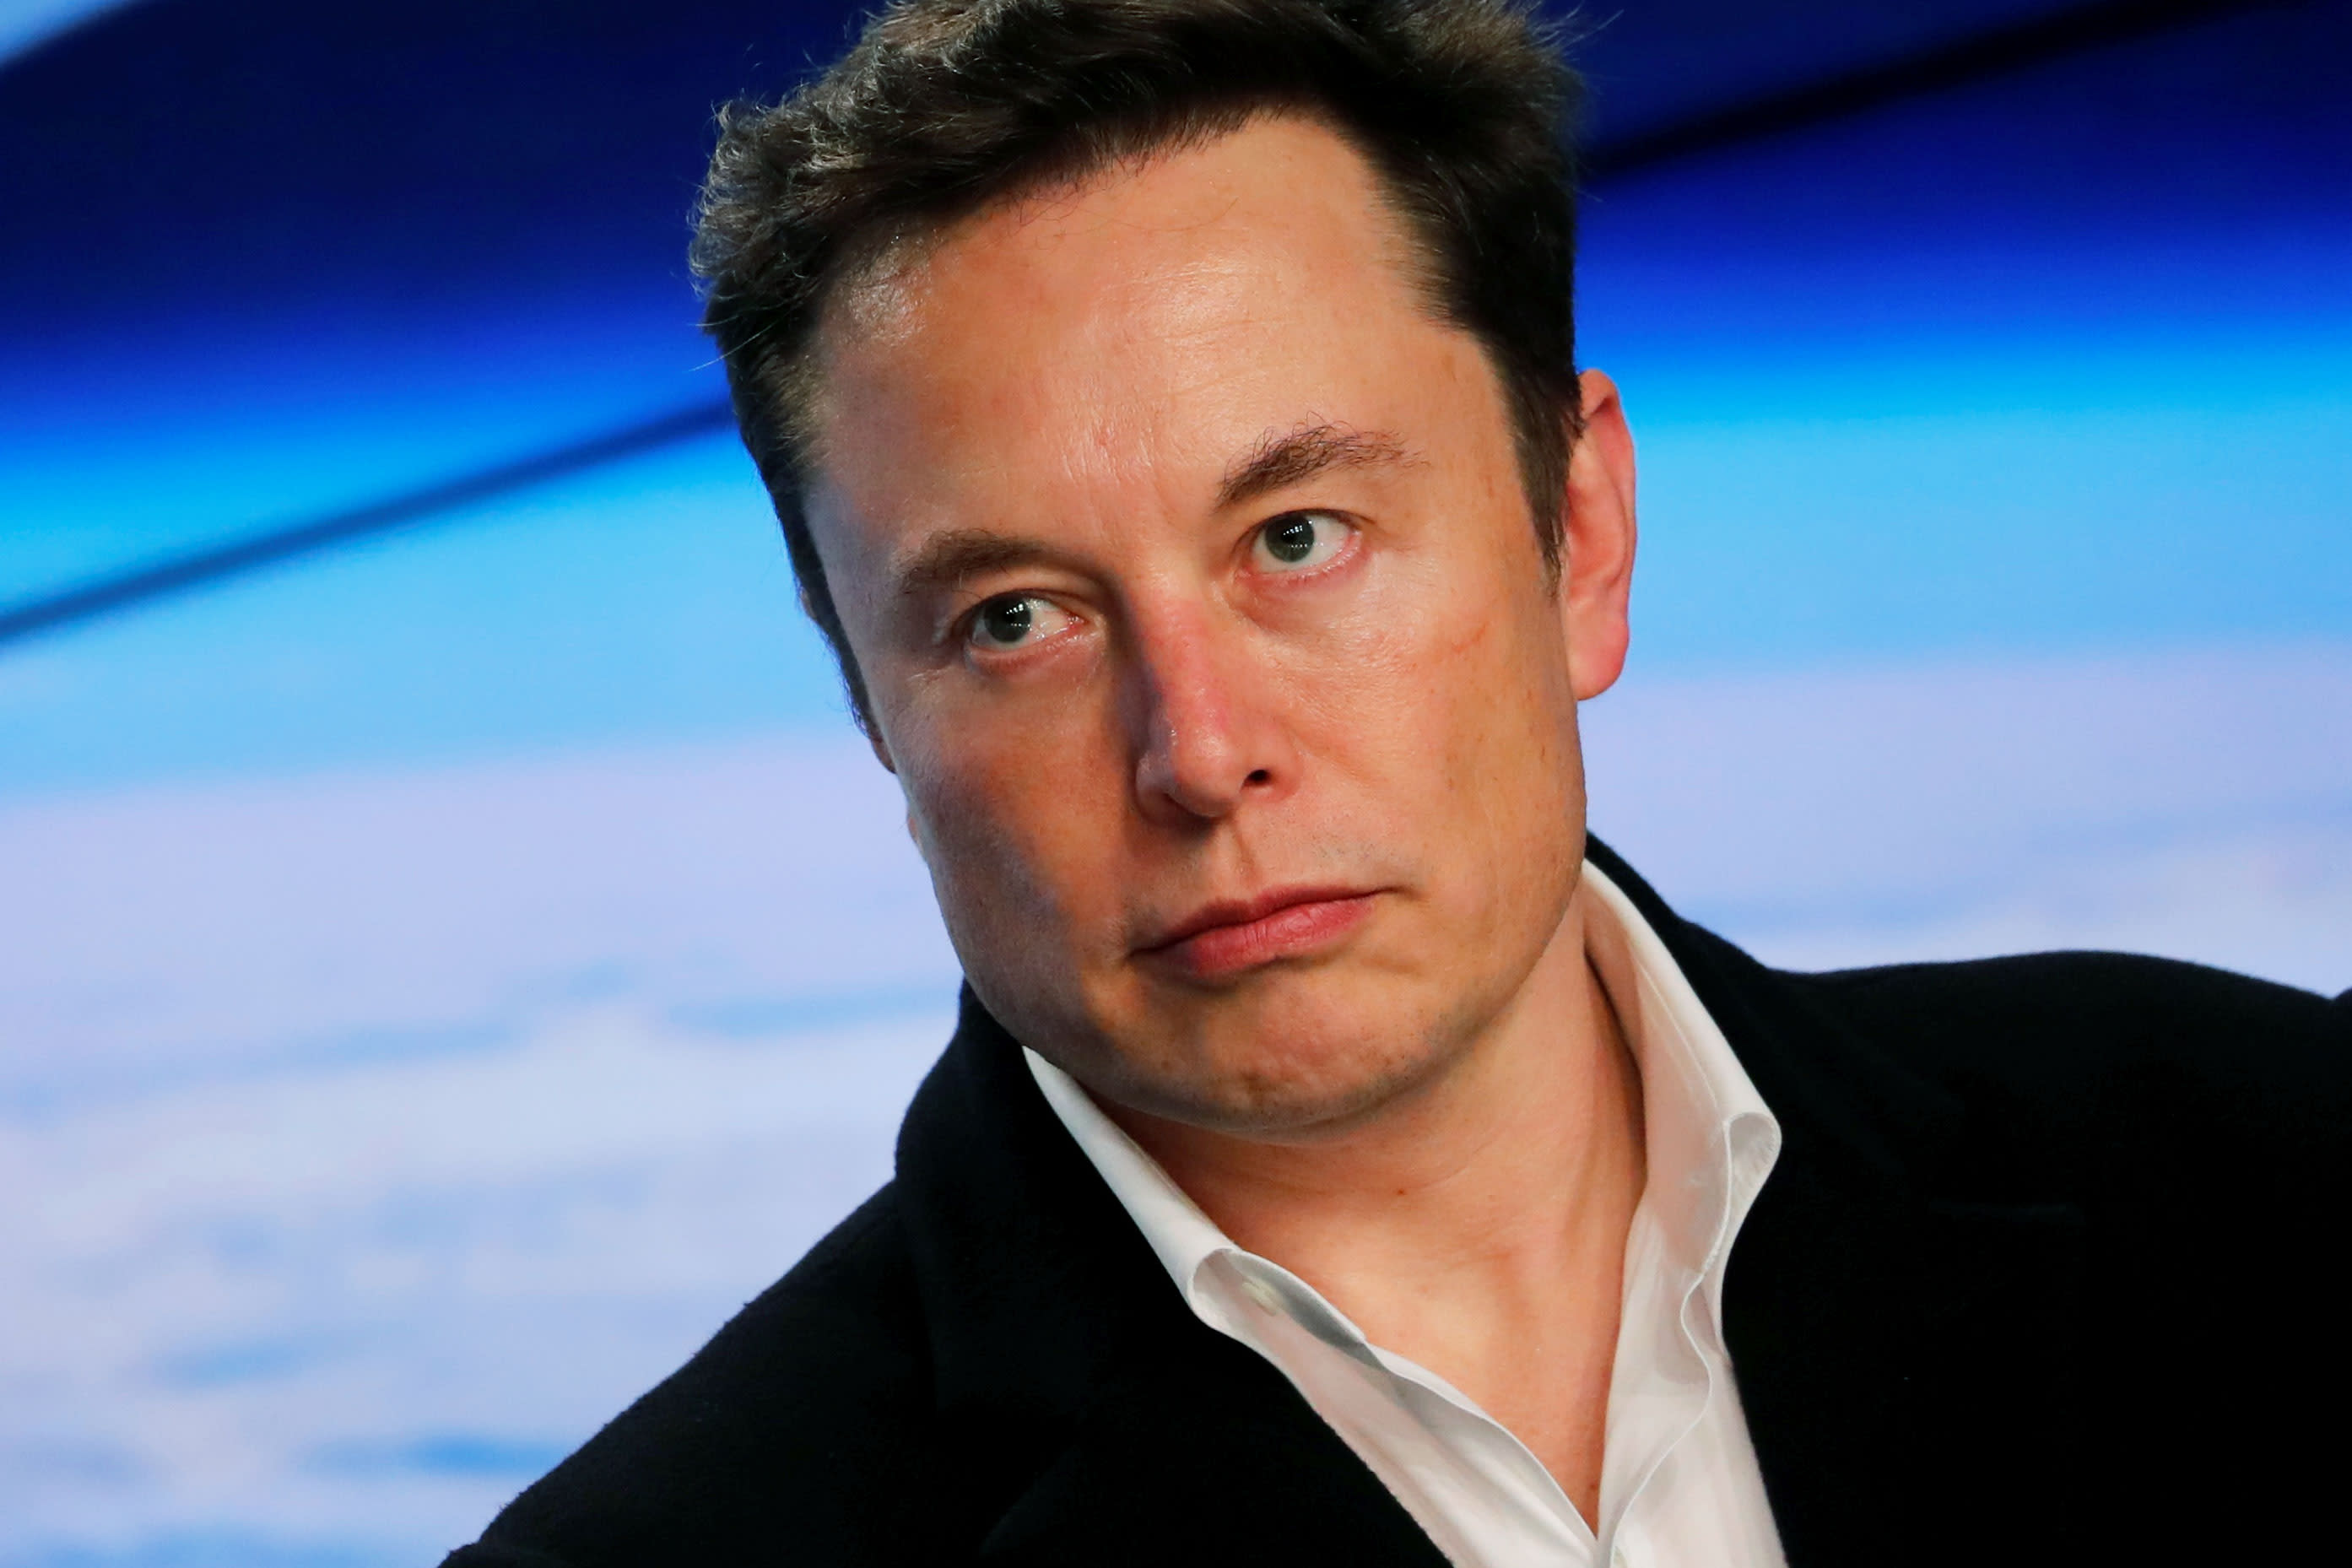 Don't expect Apple or Amazon to buy Tesla, Morgan Stanley analyst warns investors